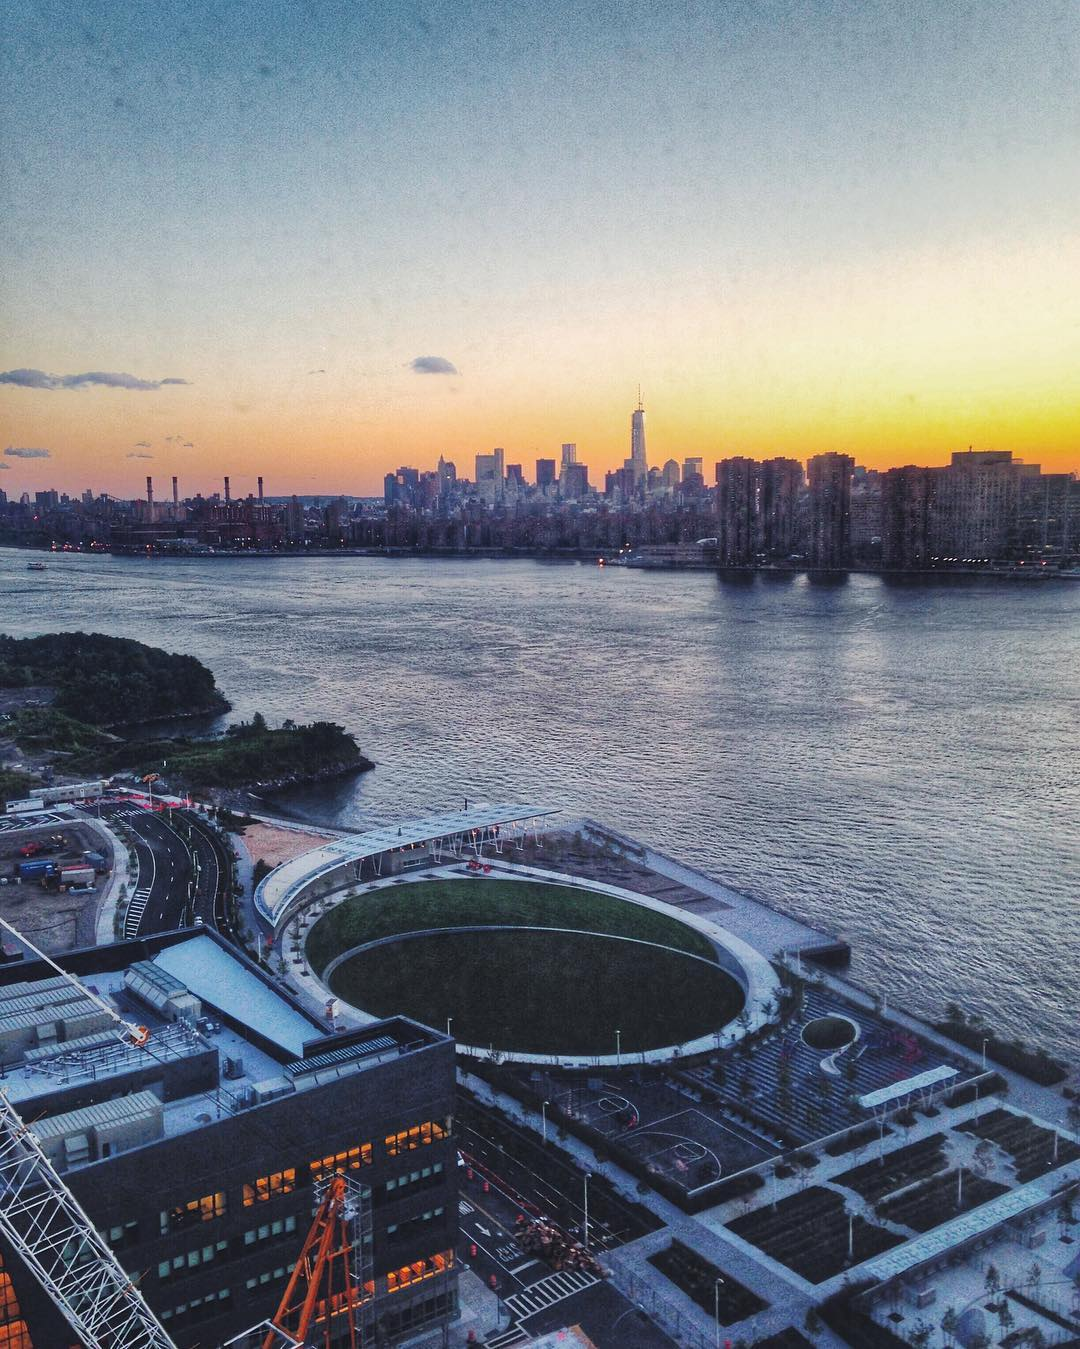 """Throwback to before Hunters Point South Park in Long Island City was completely finished and they just started building the """"affordable"""" housing.                #changingqueenscapes #queenscapes #heartofqueens #queensnyc #queensny #heartofqueens #2013 #tbt #itsinqueens  (at Hunters Point South Park)"""